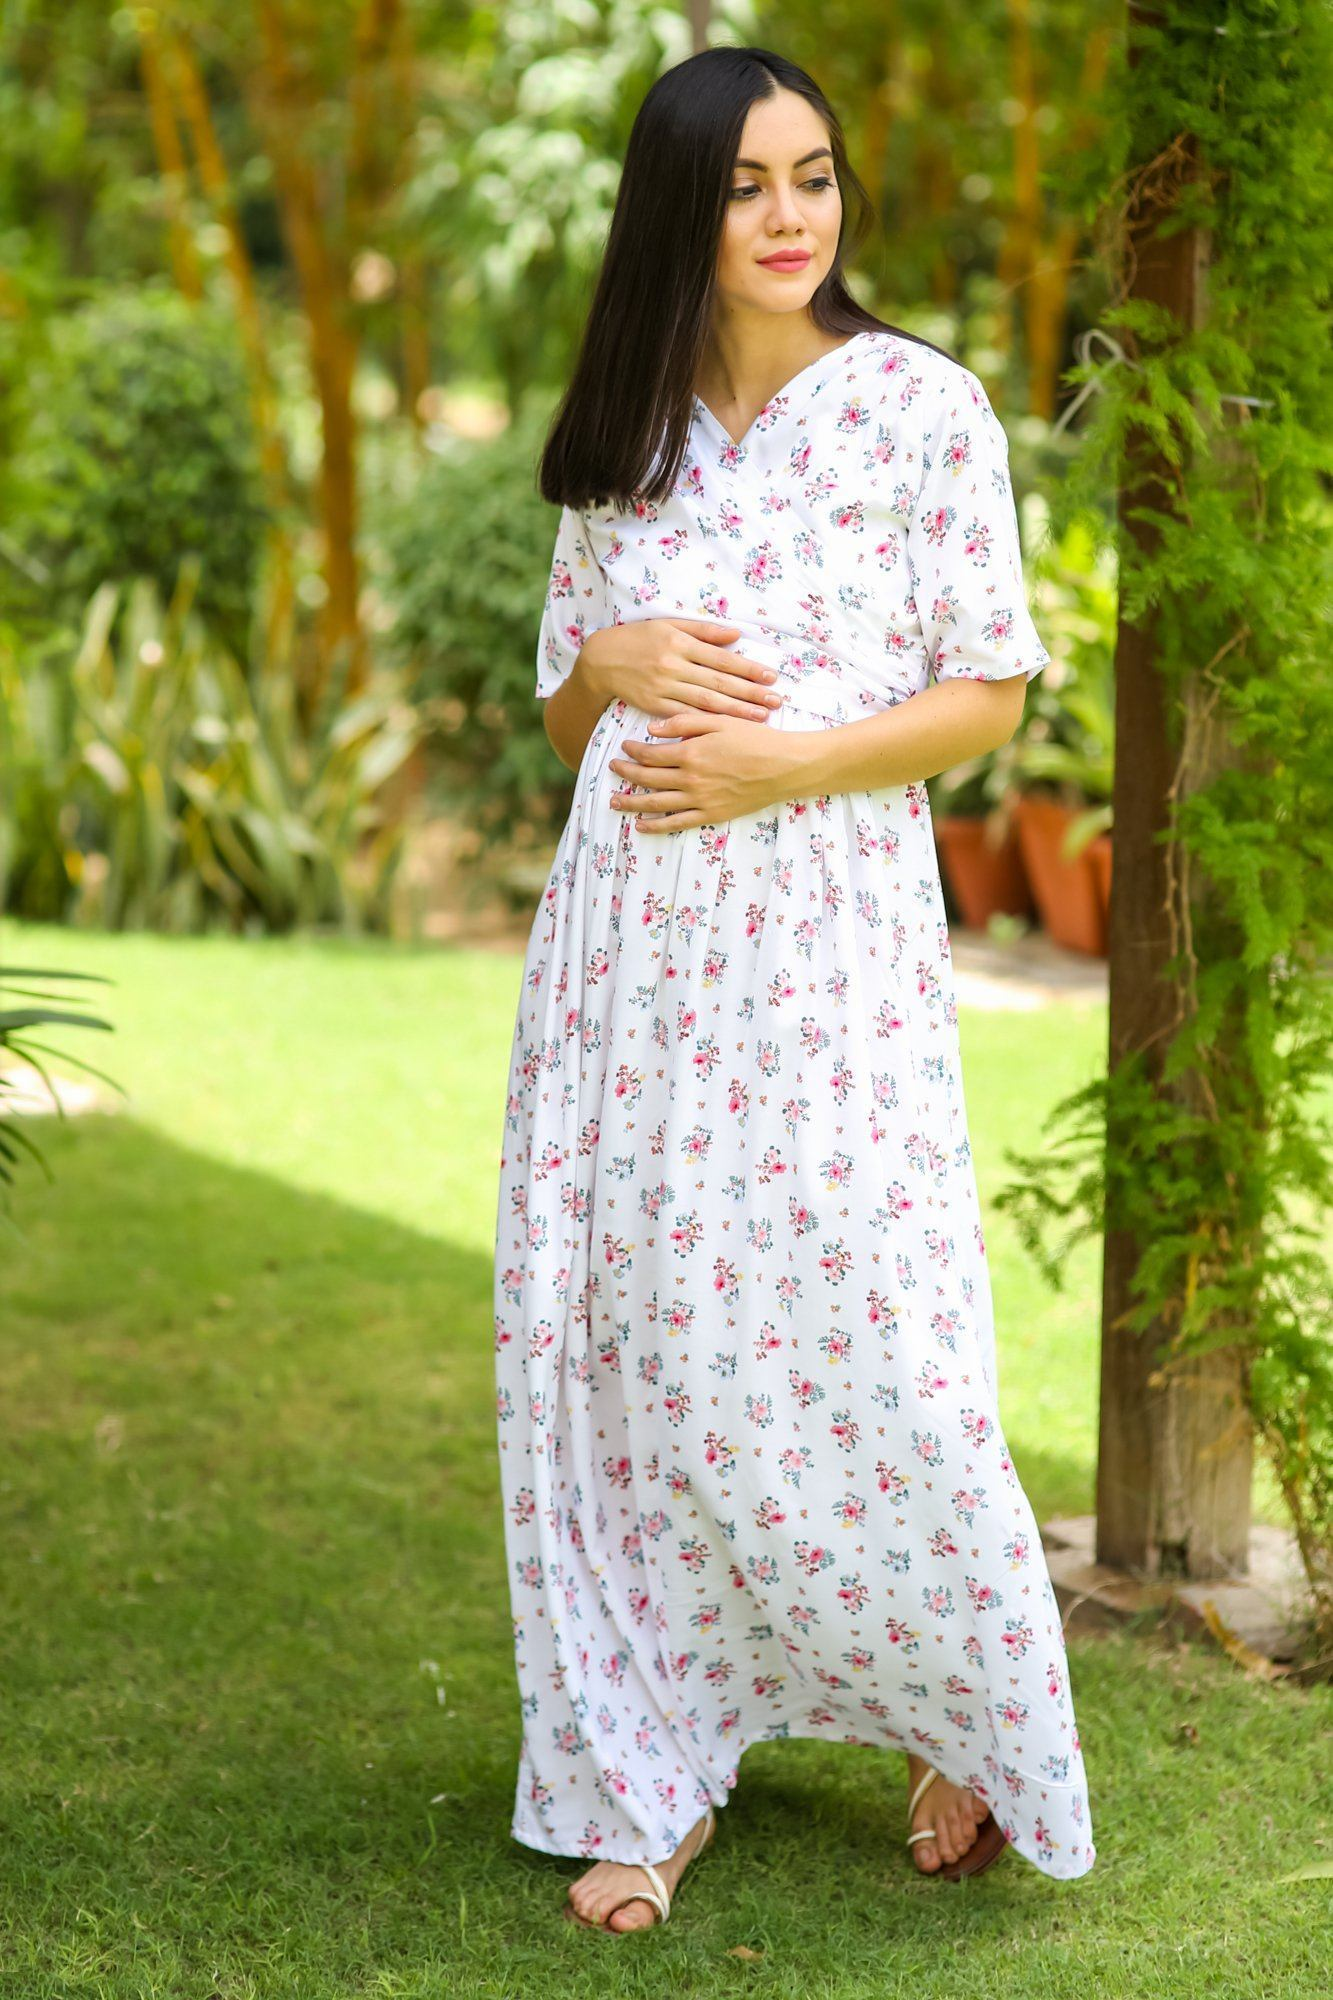 Serene White Blossom Maternity & Nursing Wrap Dress